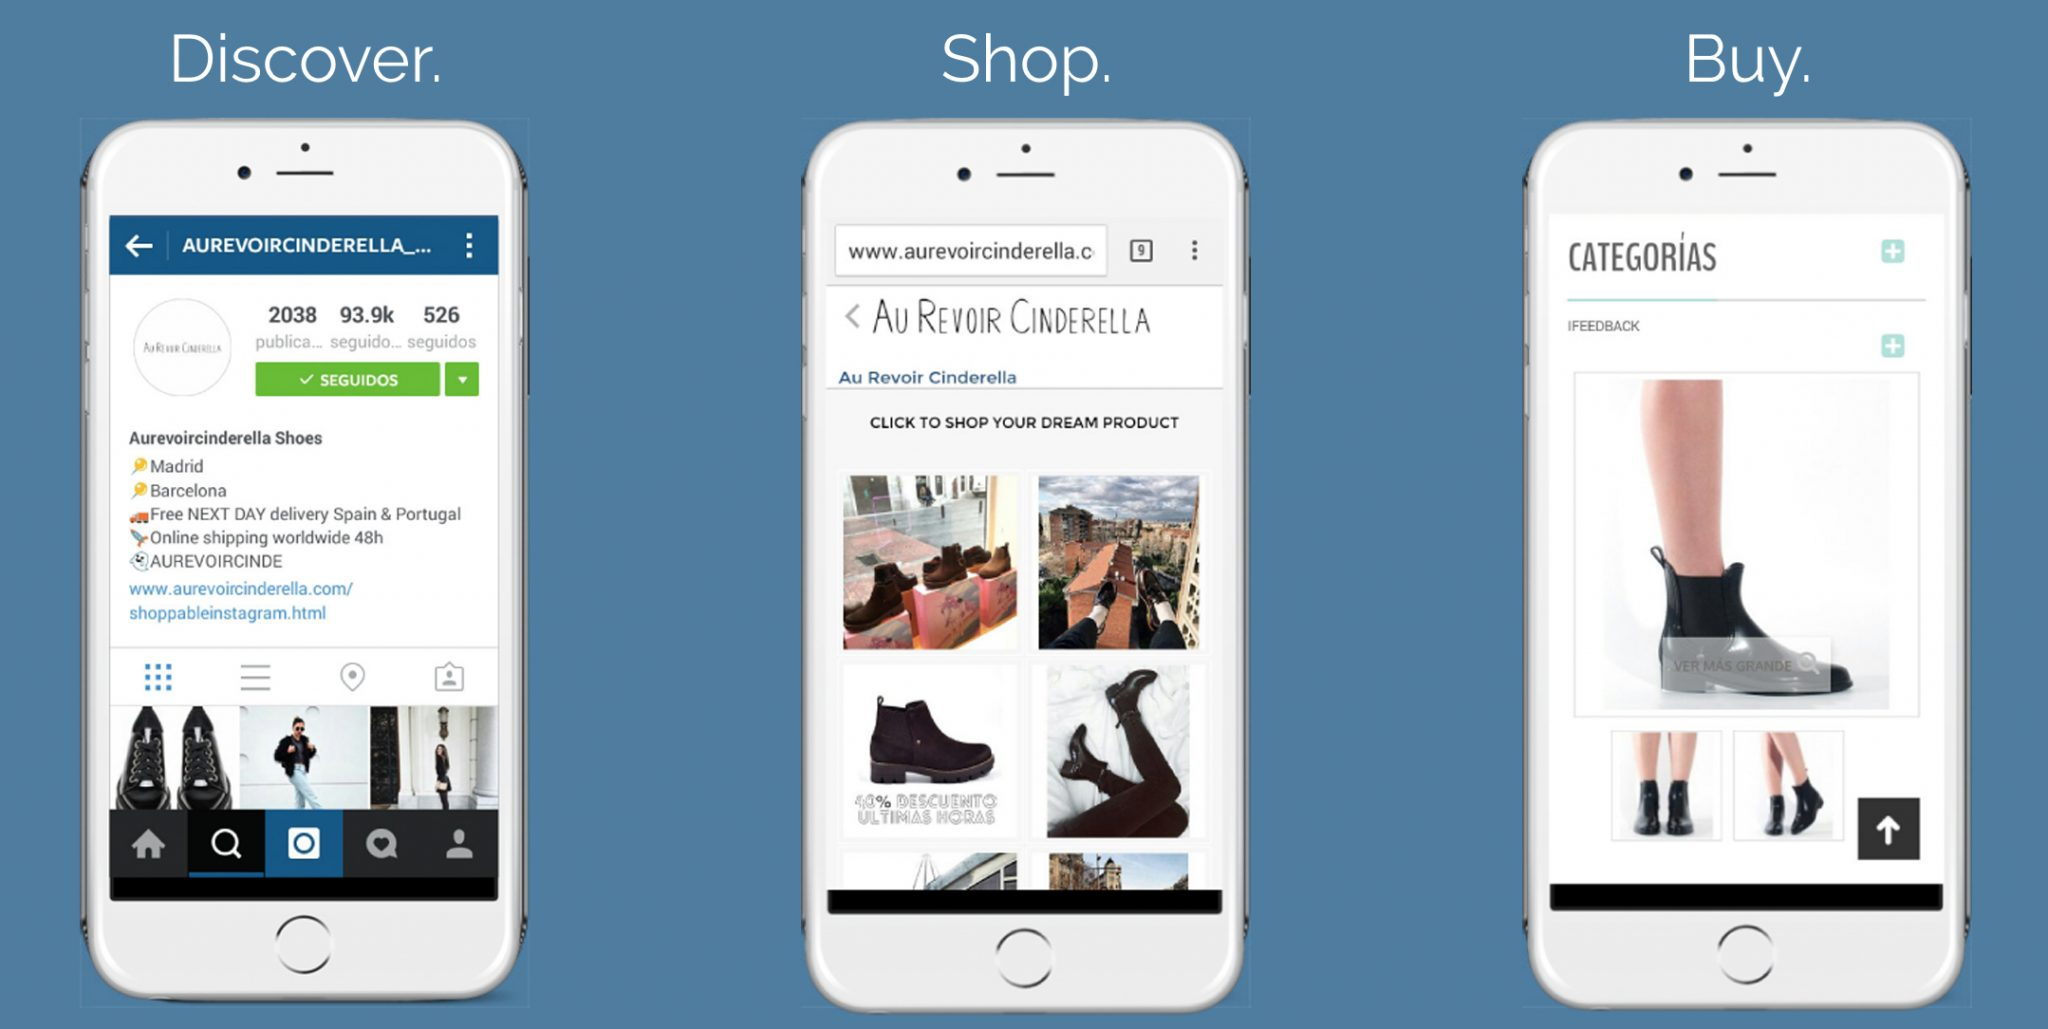 Instagram IG Shopping app